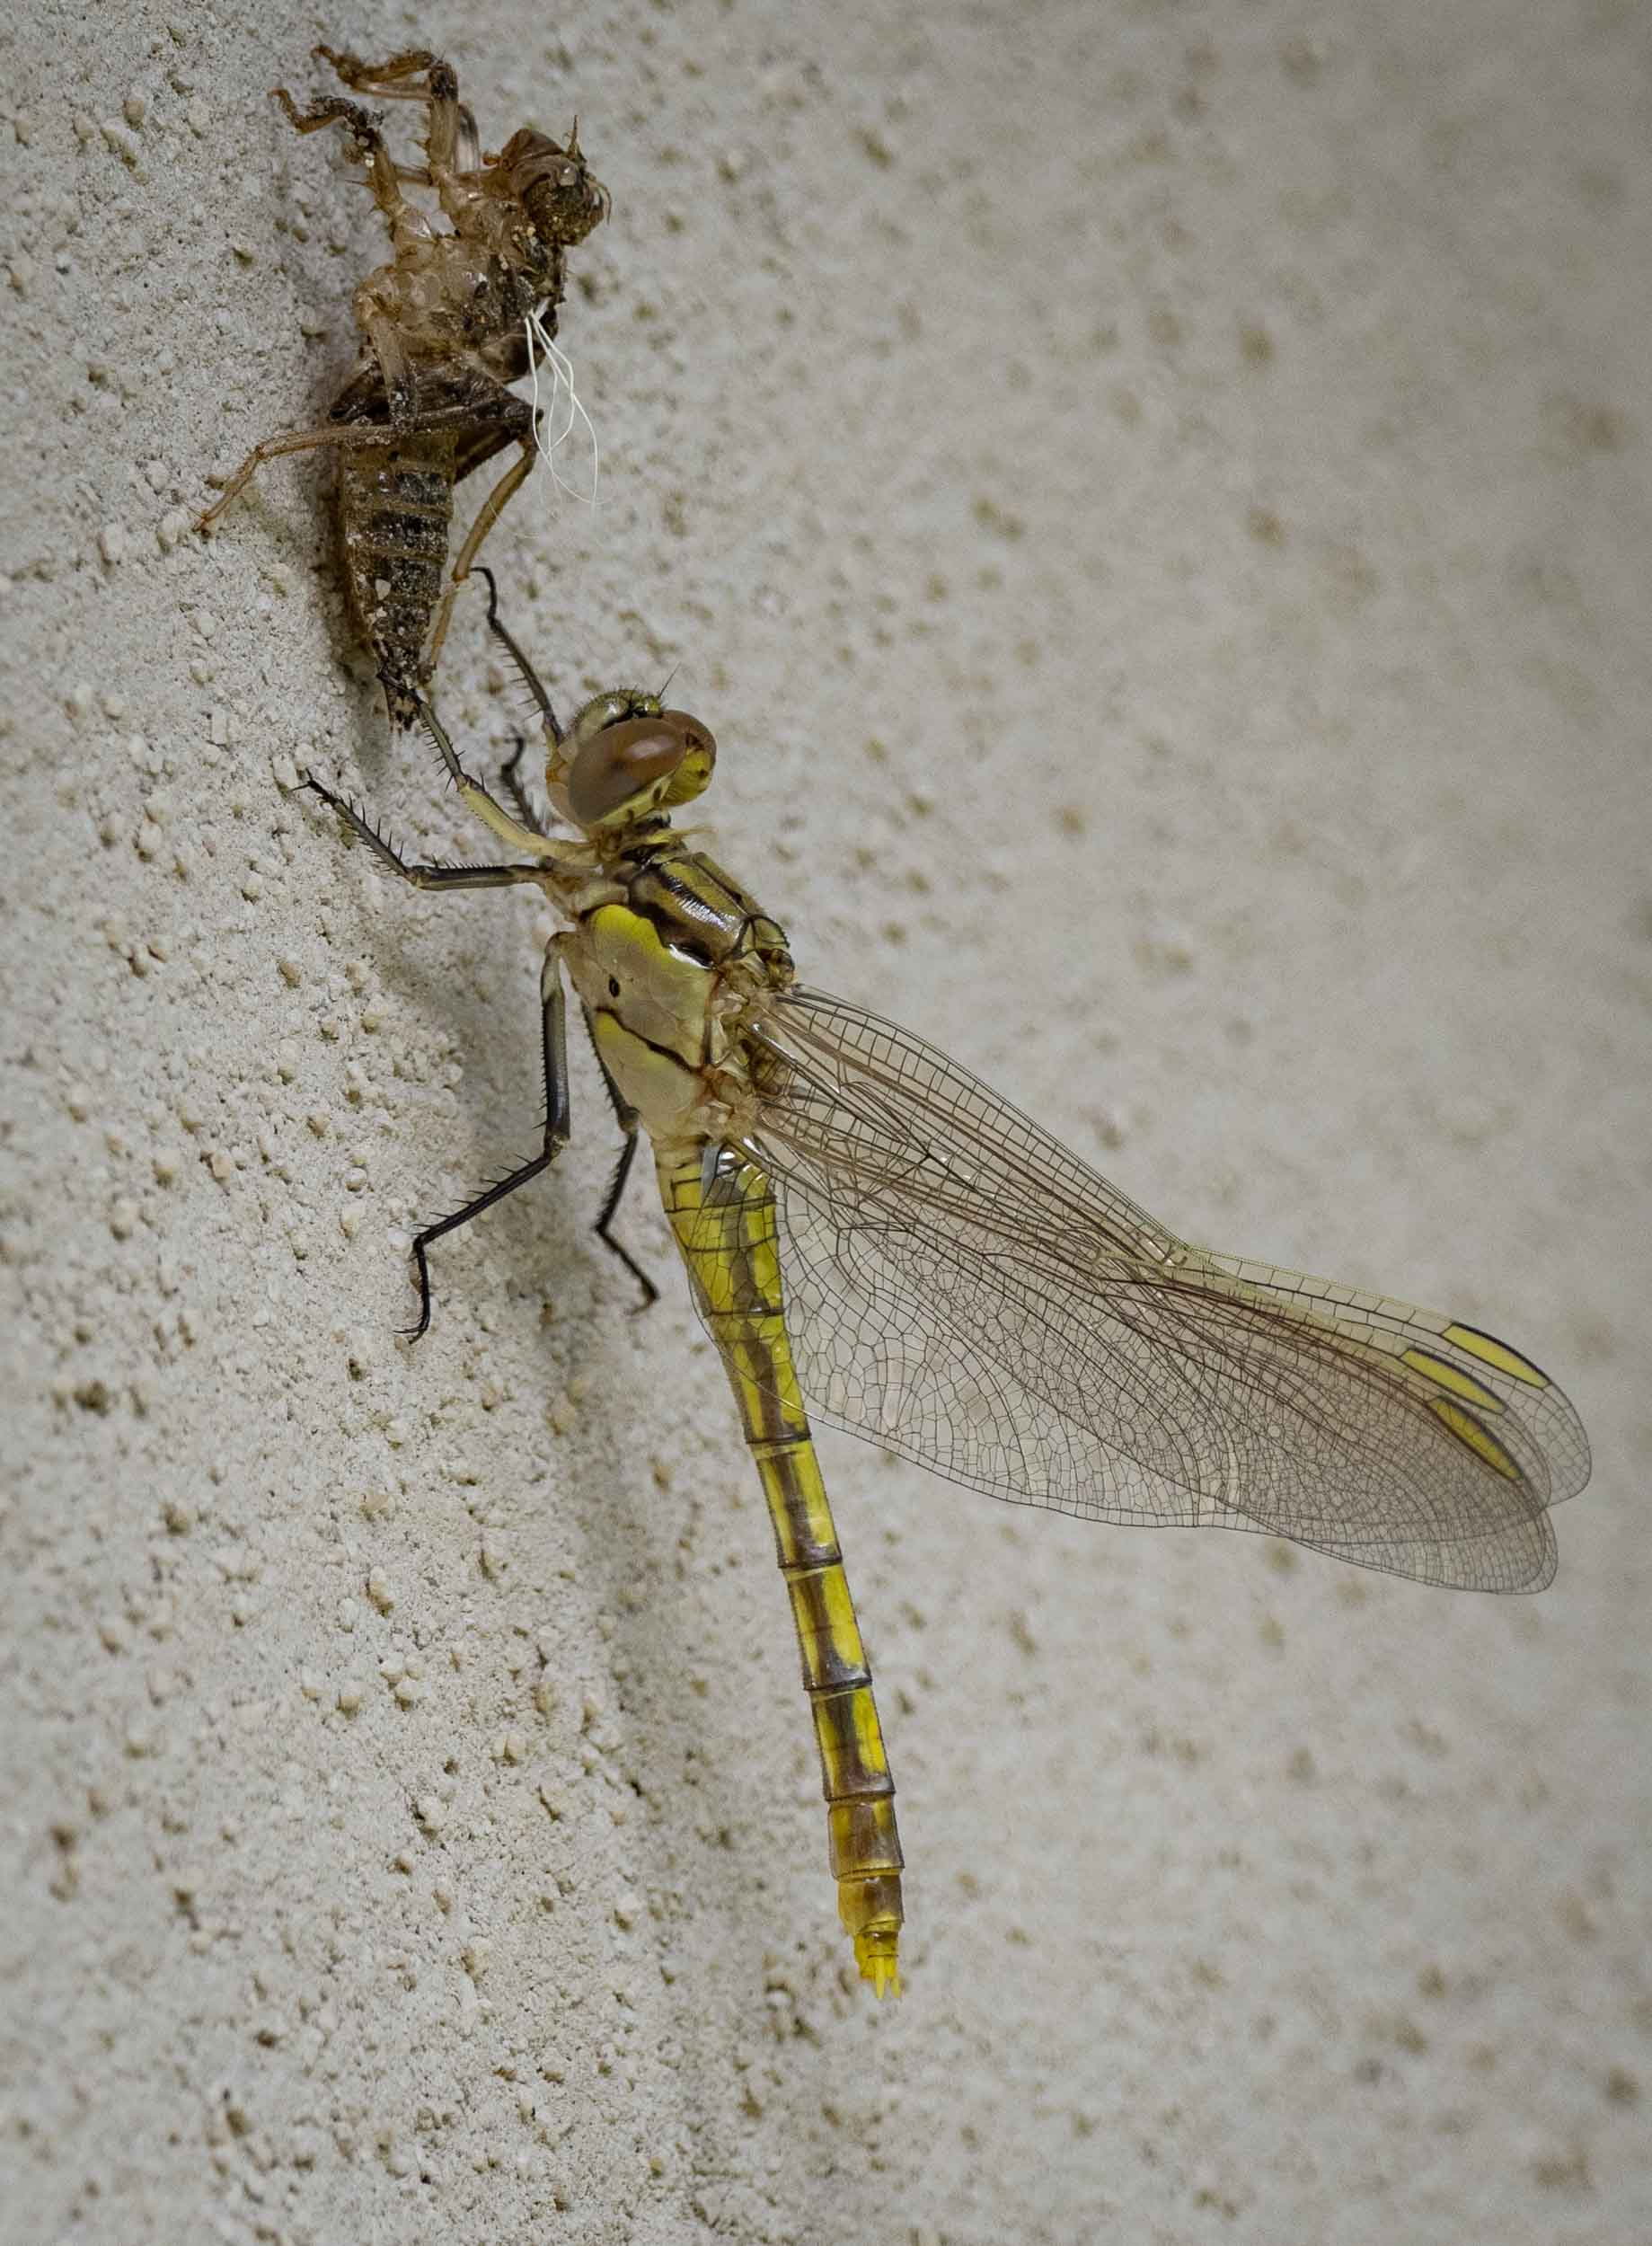 22/12/18: newly eclosed Blue Skimmer ( Orthetrum caledonicum ). She took her maiden flight just seconds after this photo was taken.